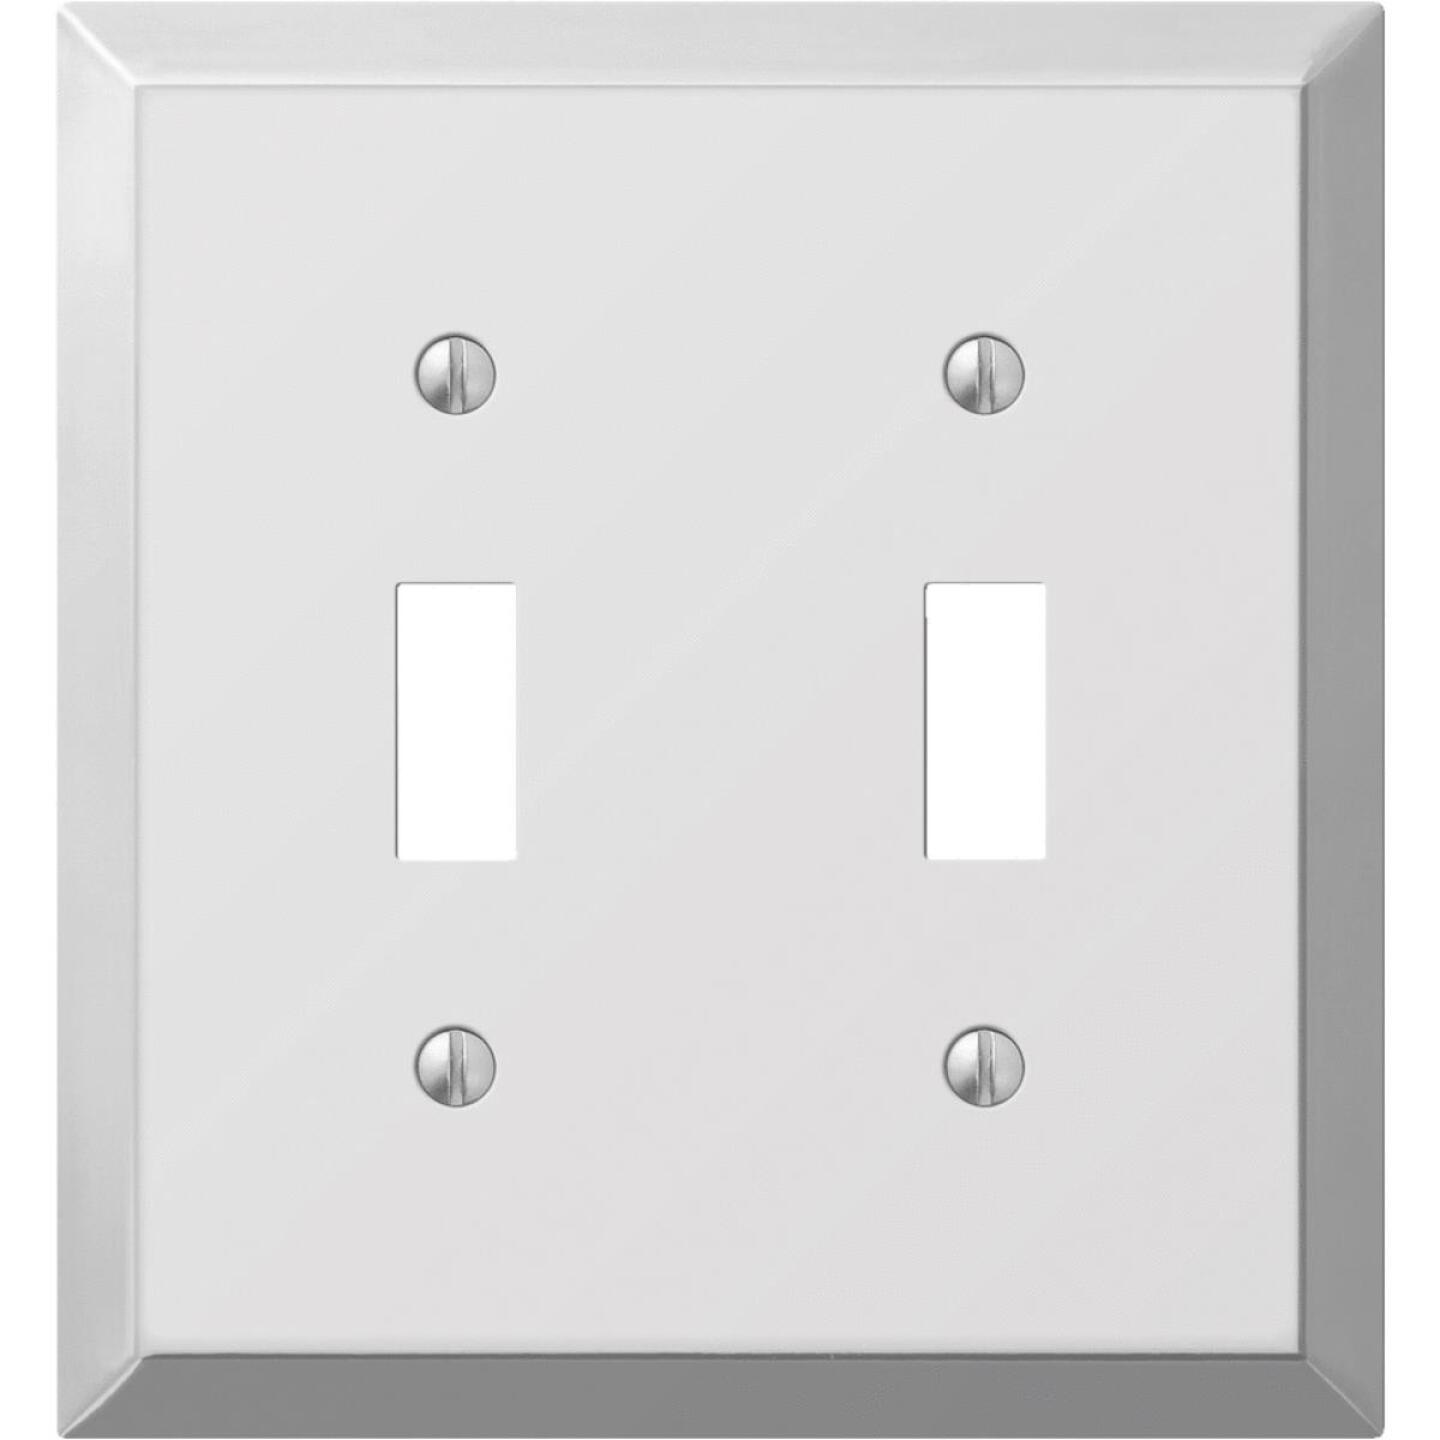 Amerelle 2-Gang Stamped Steel Toggle Switch Wall Plate, Polished Chrome Image 1